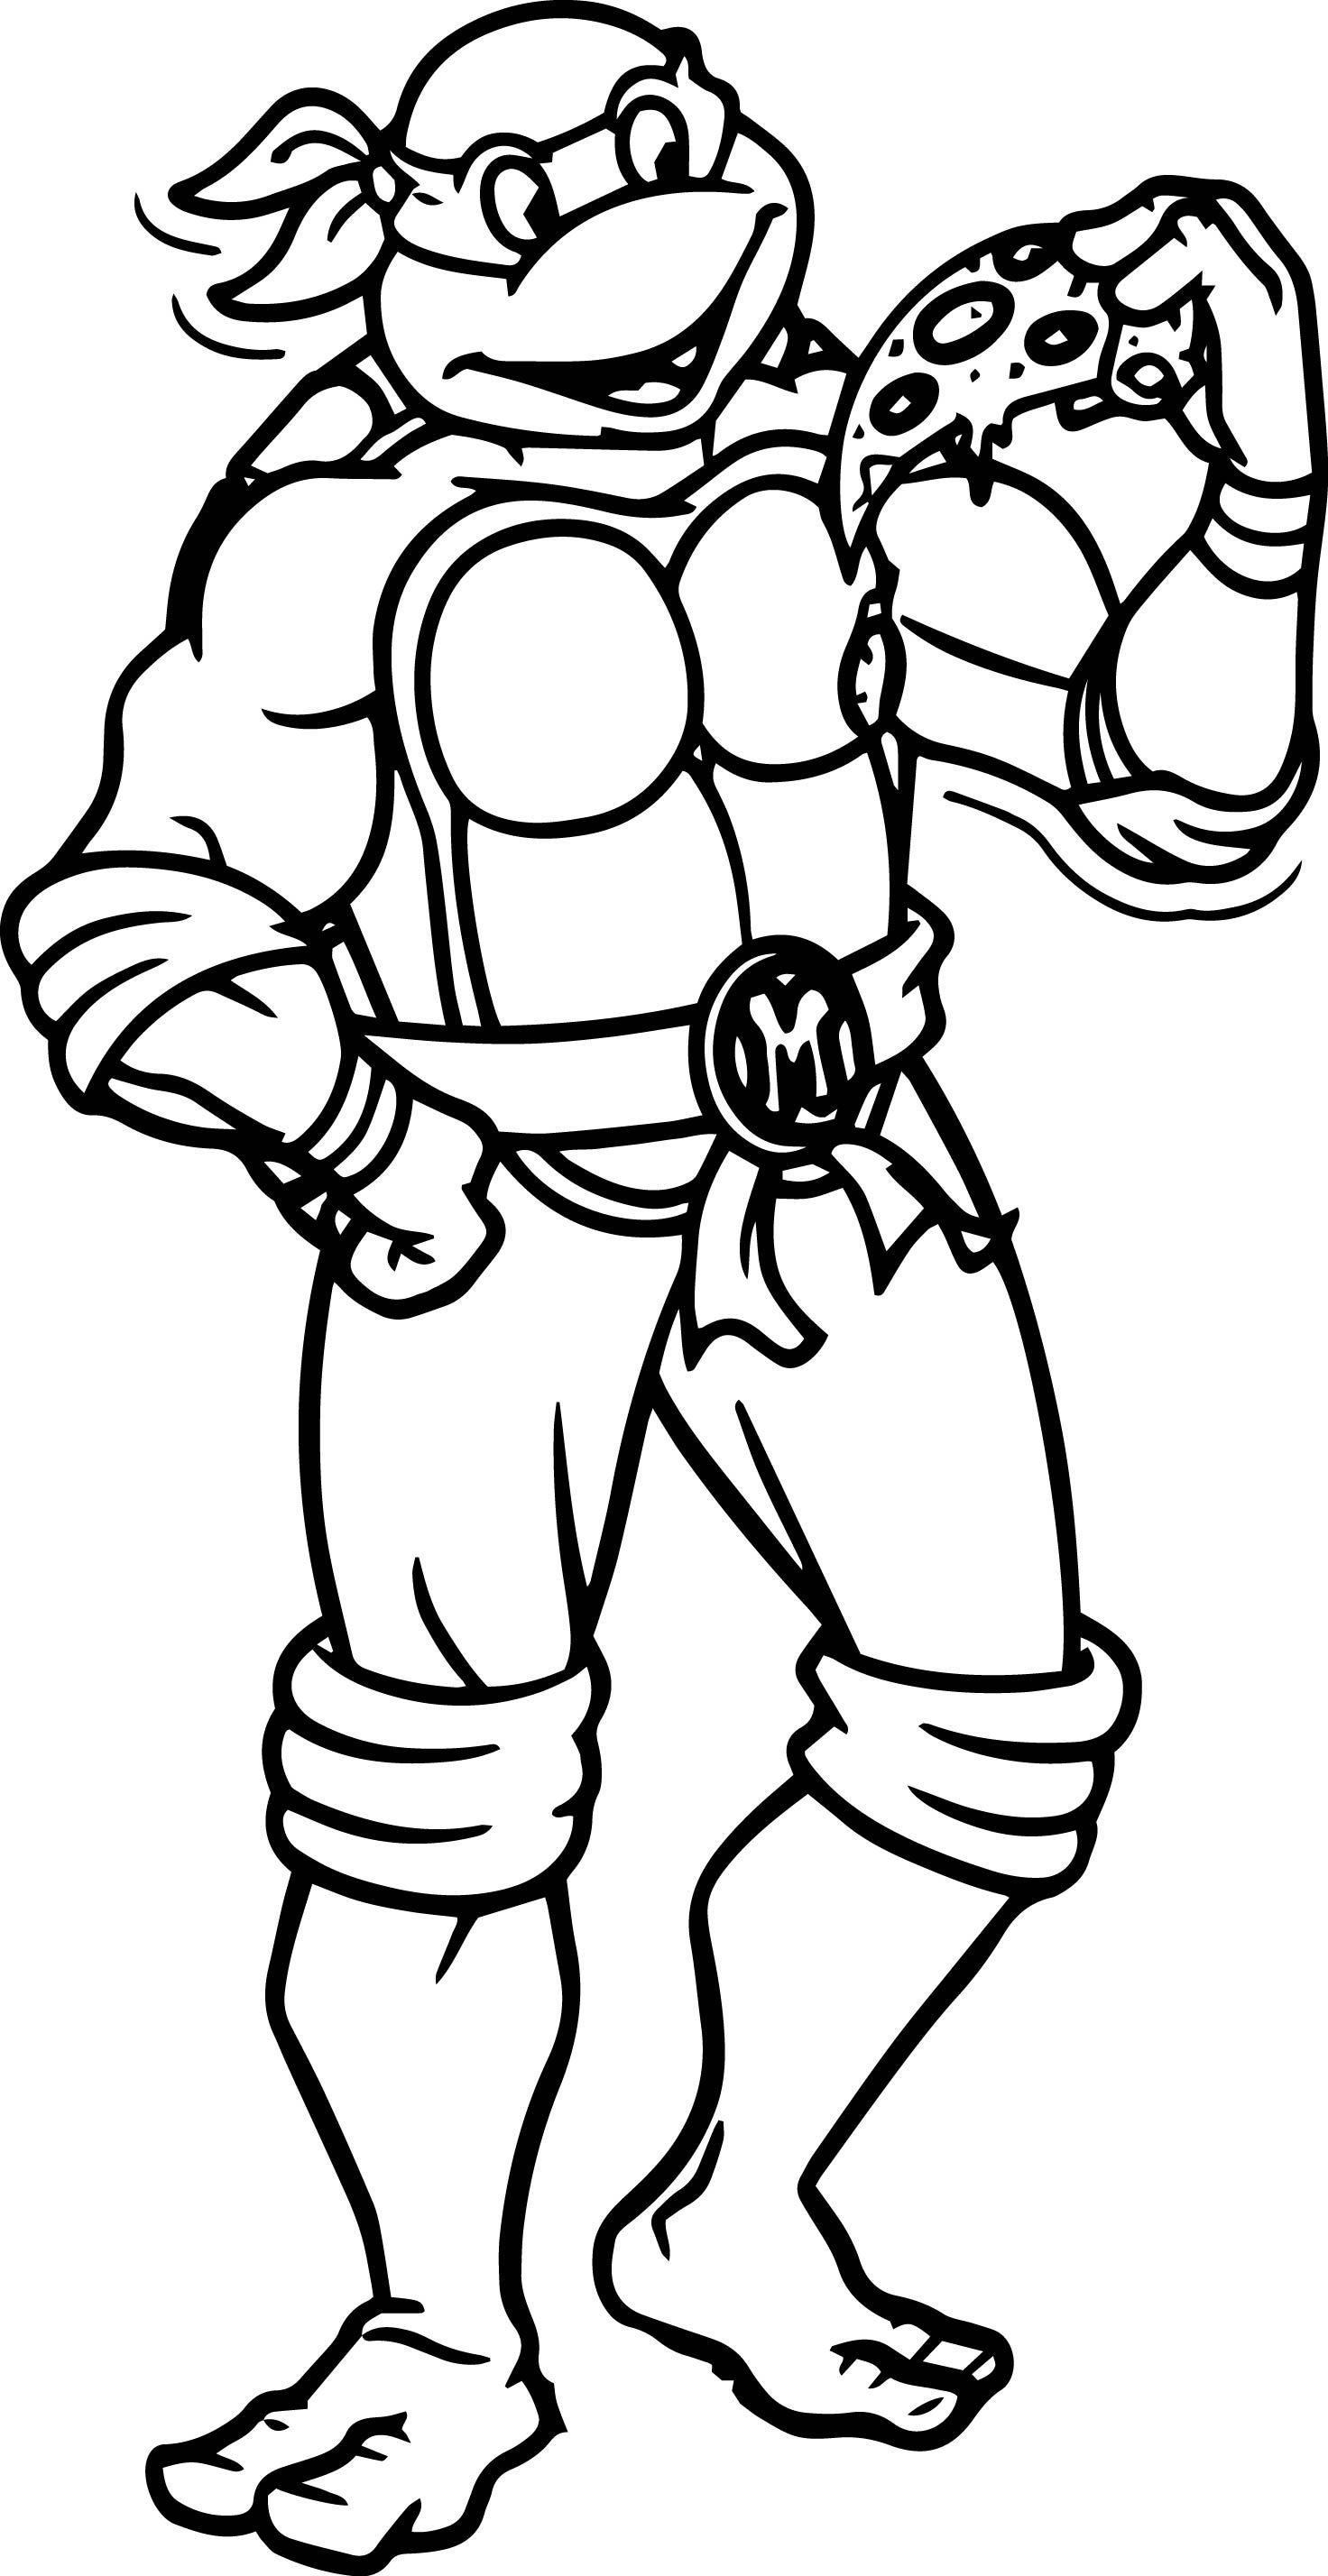 cool Ninja Turtle Cartoon Coloring Pages Check more at http